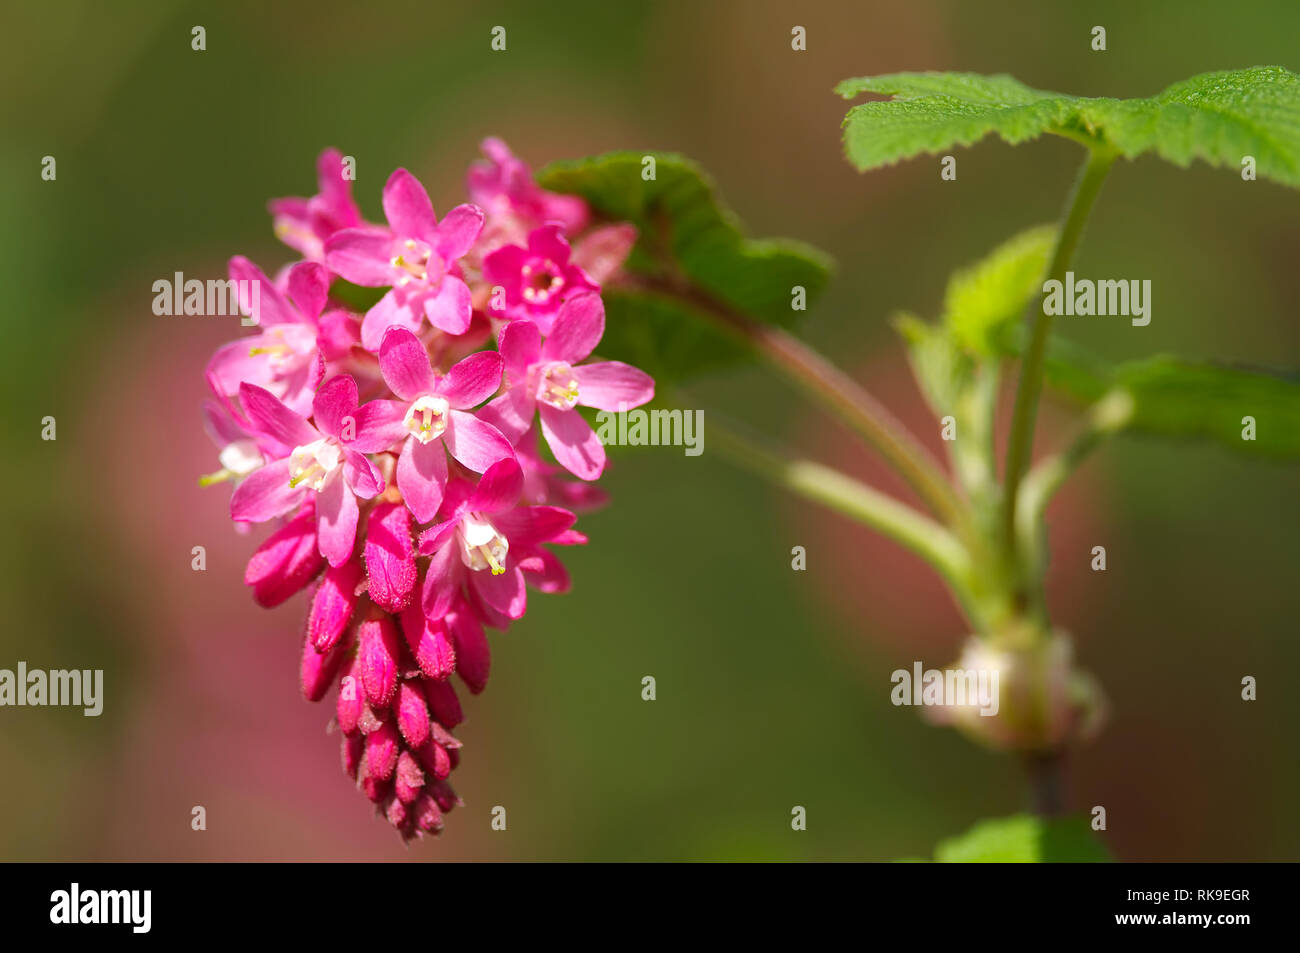 Cluster of Pink-flowering Currant (Ribes sanguineum glutinosum) blossoms. - Stock Image